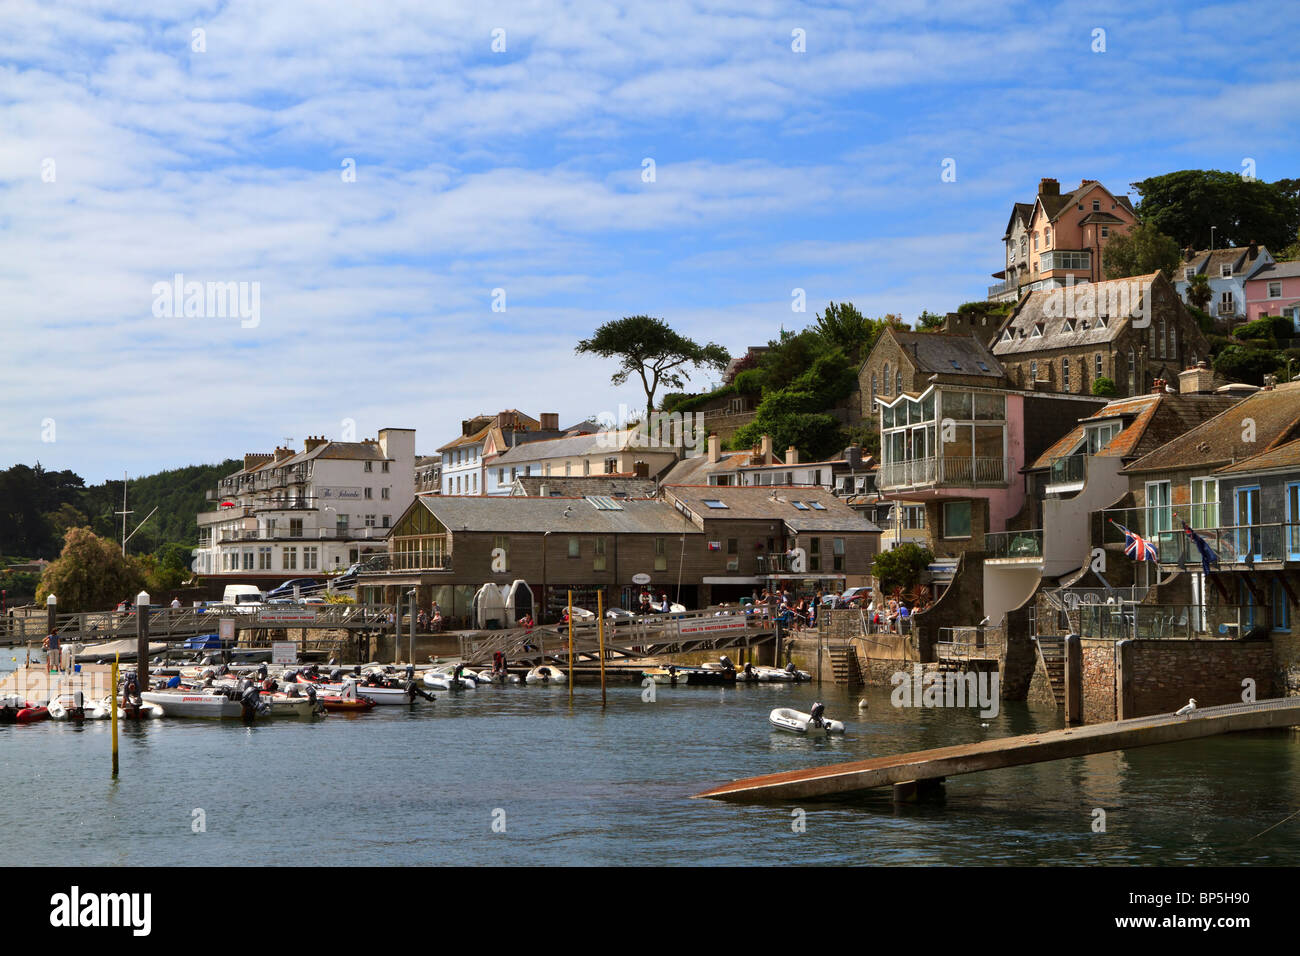 The busy waterfront of Salcombe, South Hams, Devon - Stock Image